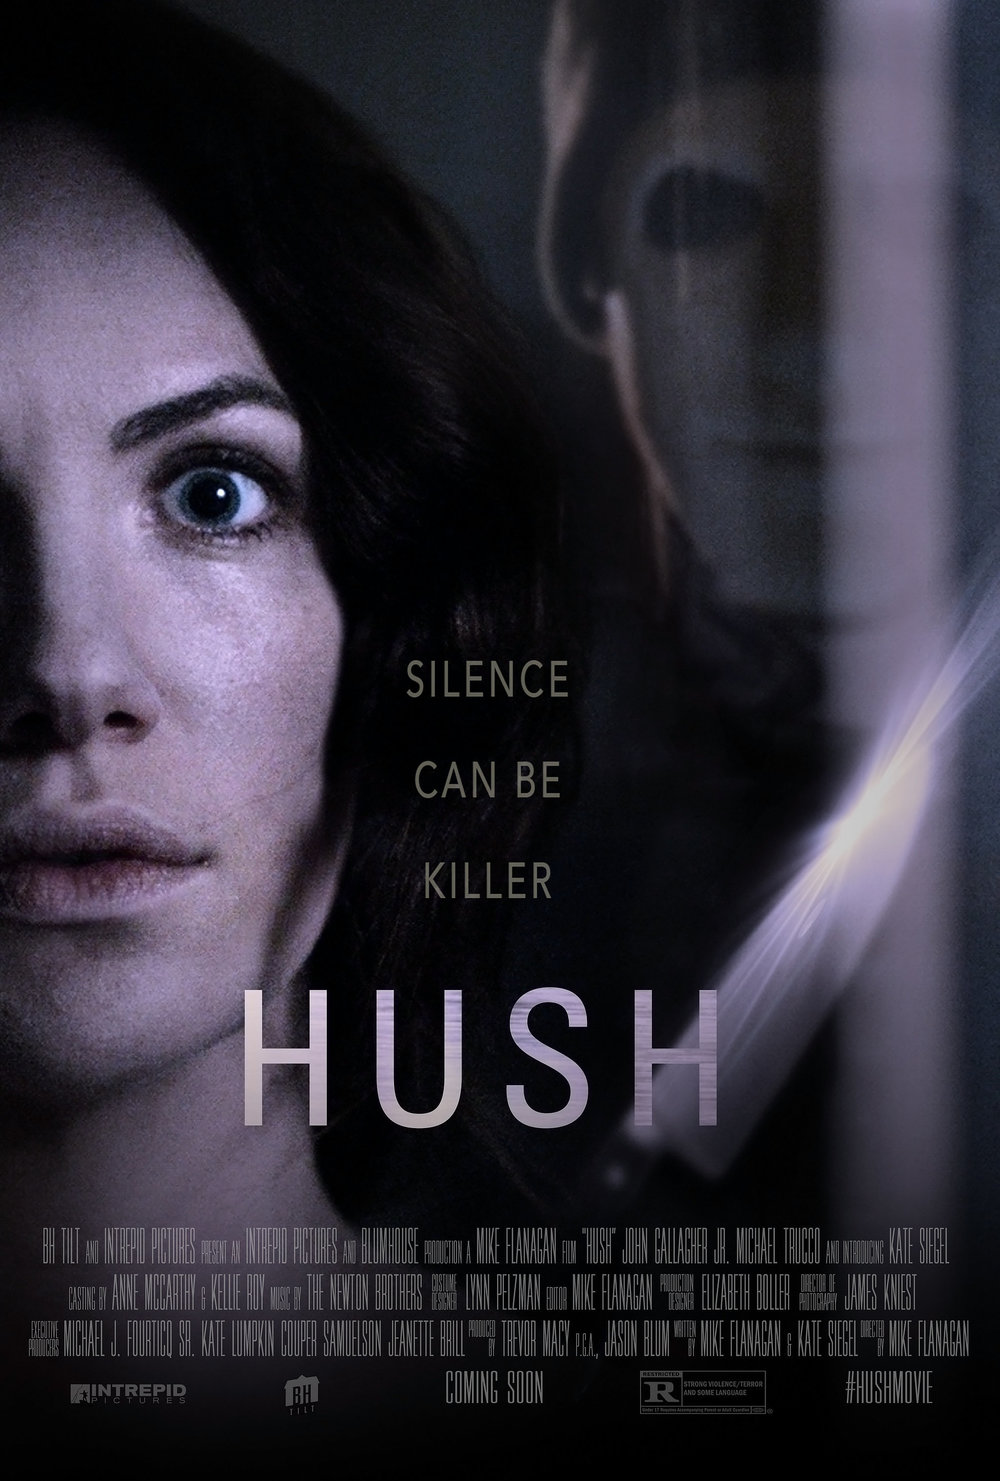 hush-movie-poster-2016.jpg